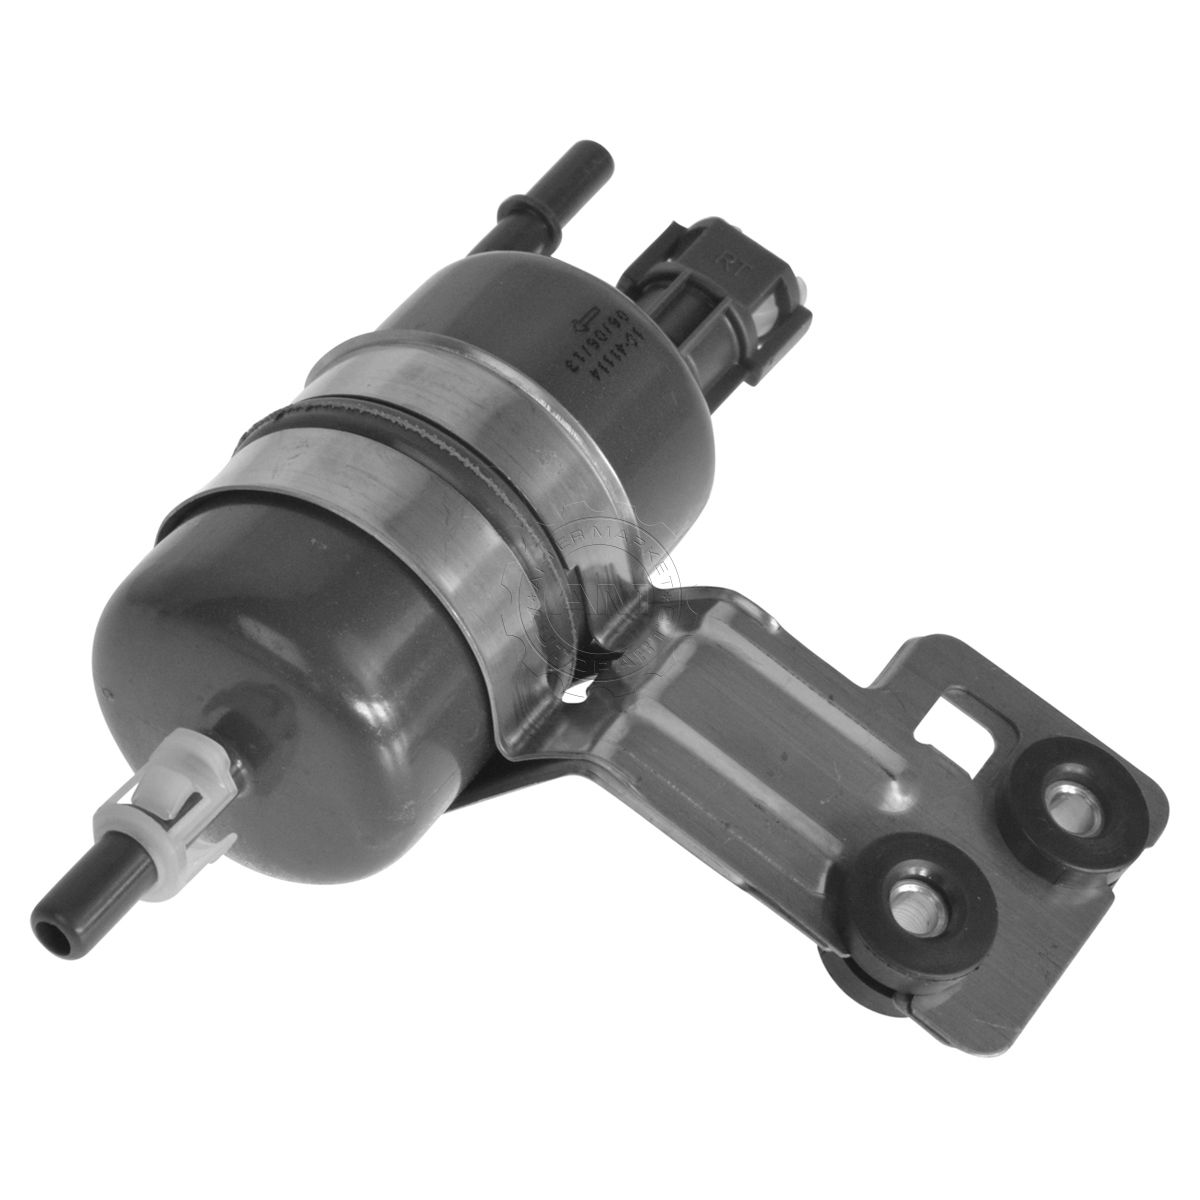 hight resolution of oem 68193495aa fuel filter regulator assembly for 02 04 jeep grand cherokee